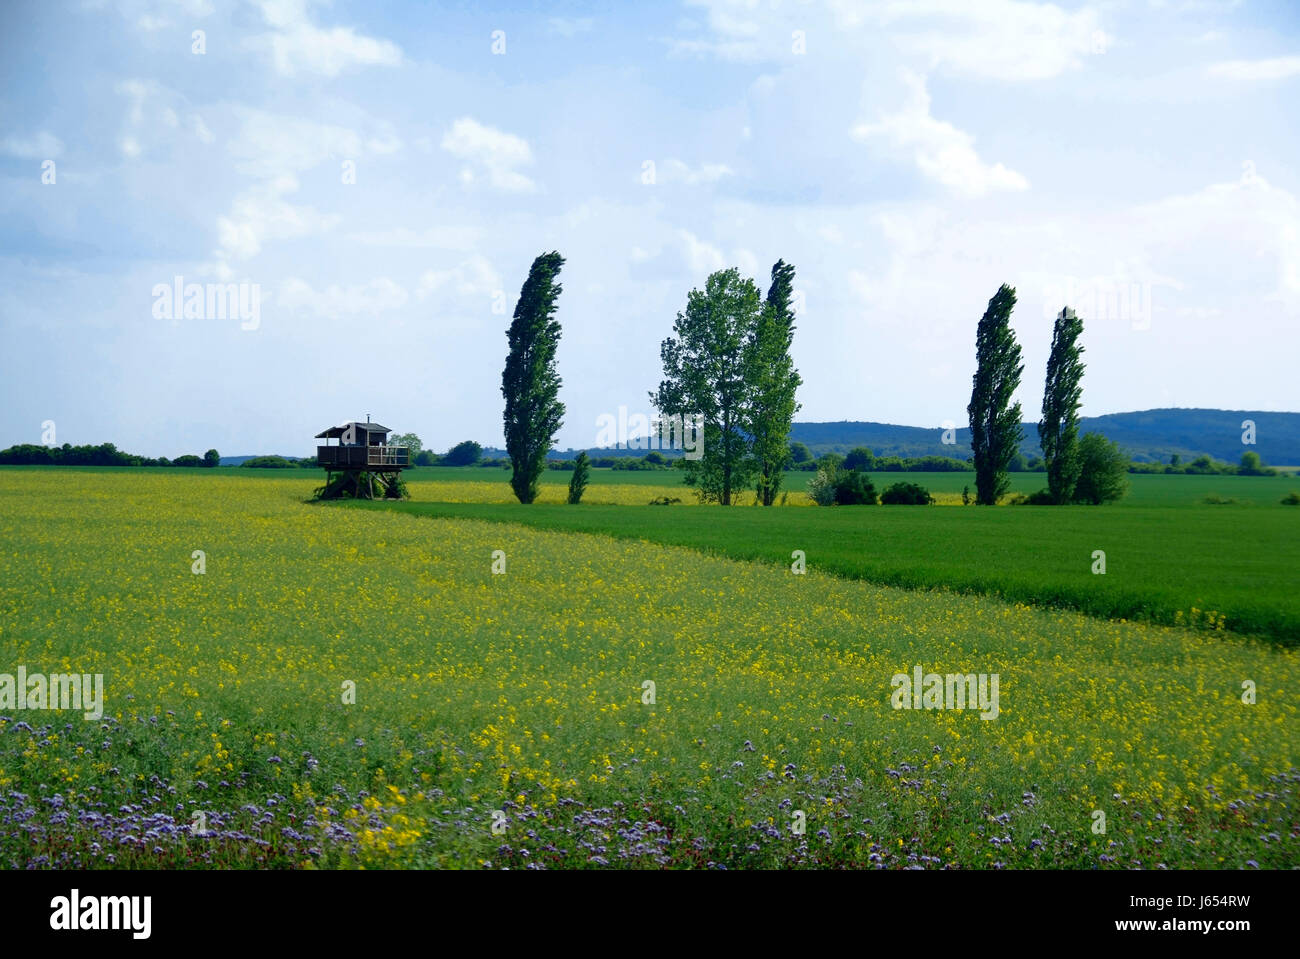 austrians freedom liberty border agreement hungary watching observe watch plant Stock Photo